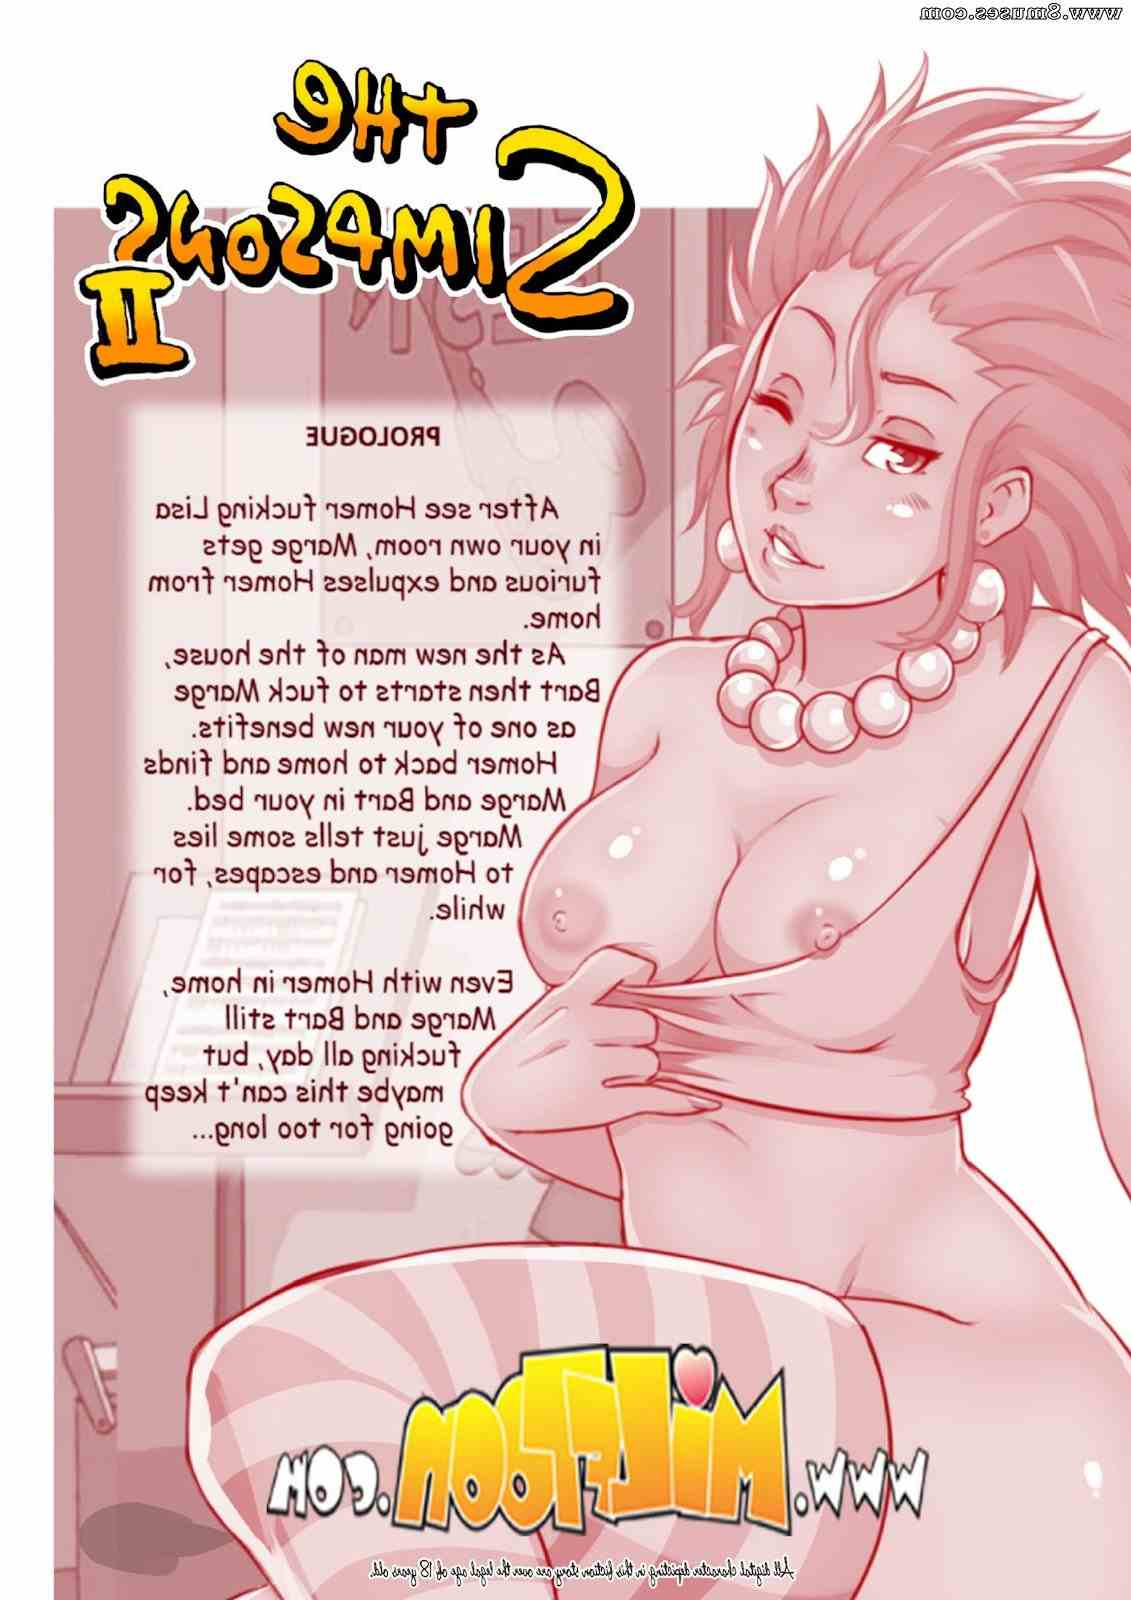 MilfToon-Comics/The-Simpsons The_Simpsons__8muses_-_Sex_and_Porn_Comics_2.jpg